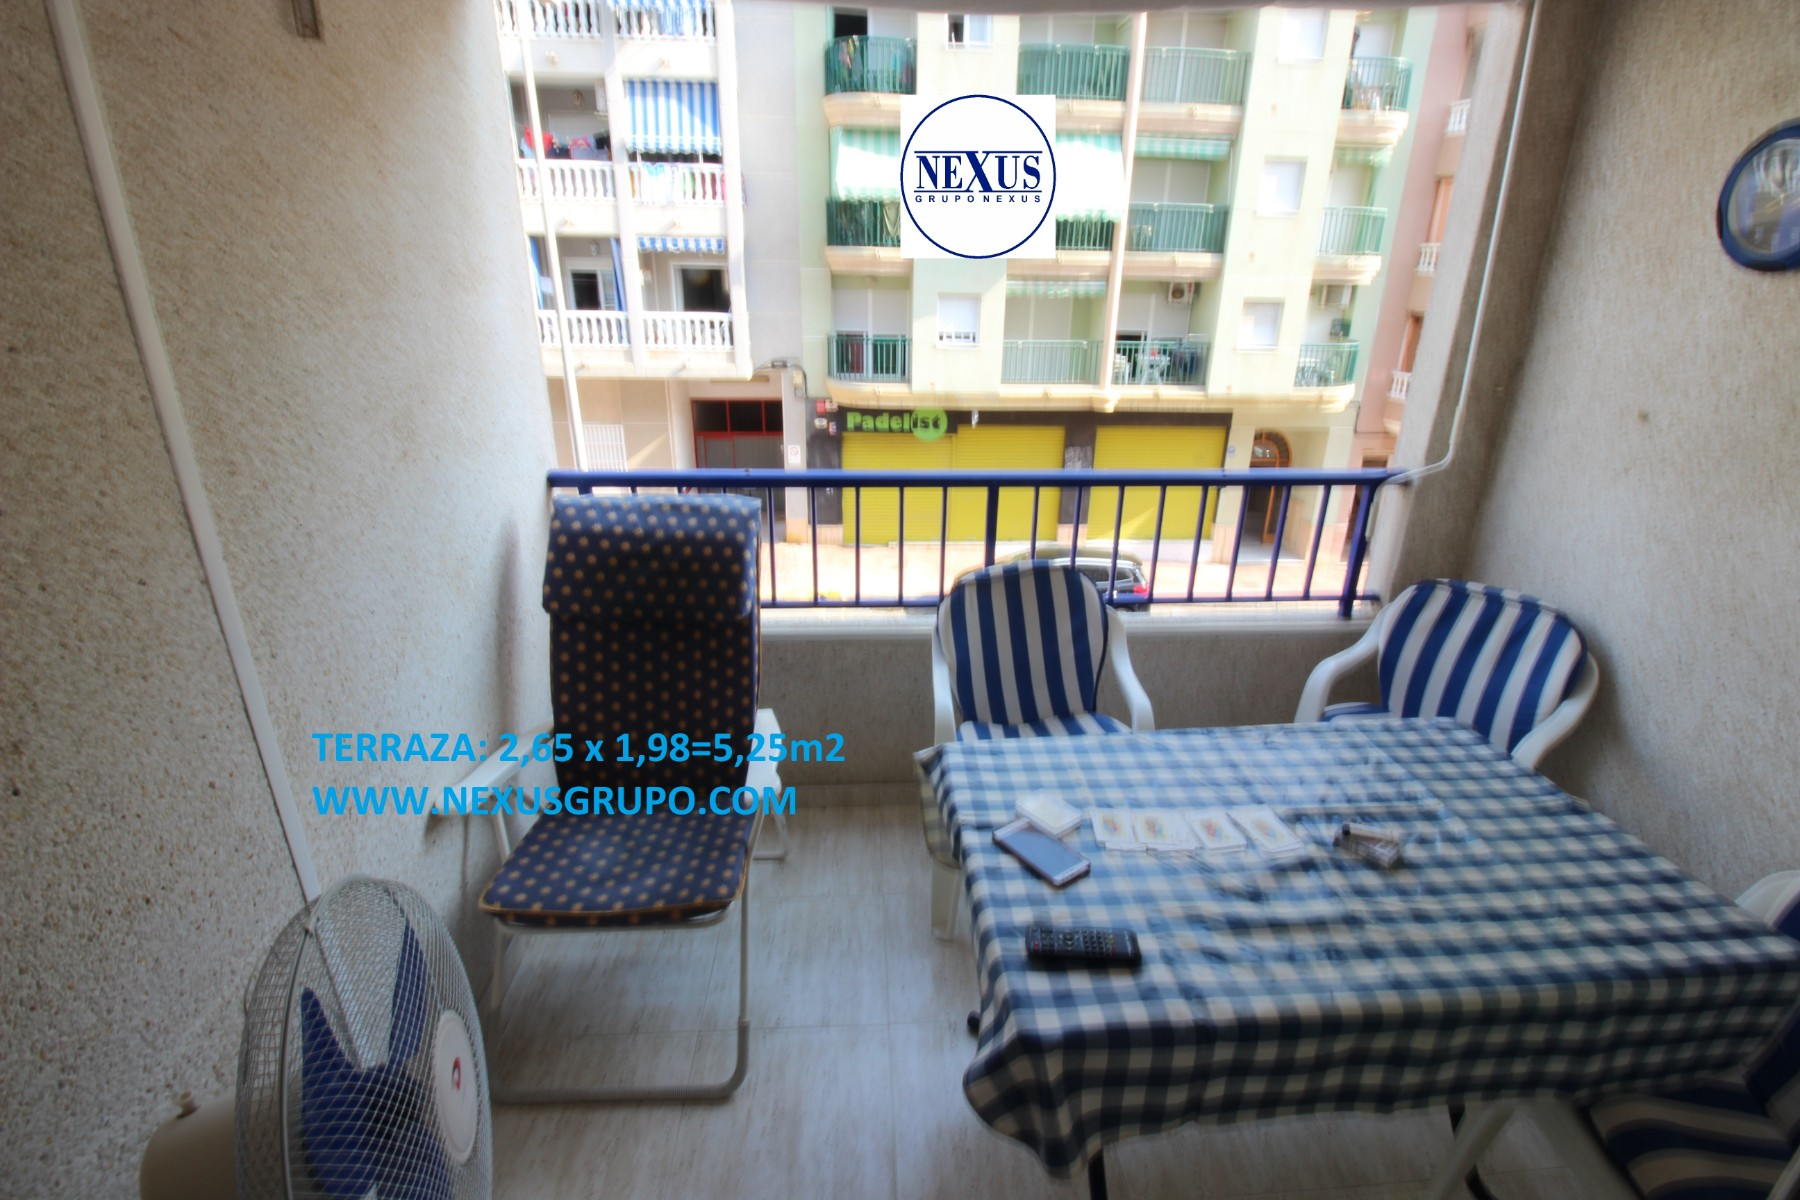 3 Slaapkamer Appartement in Guardamar del Segura - Herverkoop in Nexus Grupo